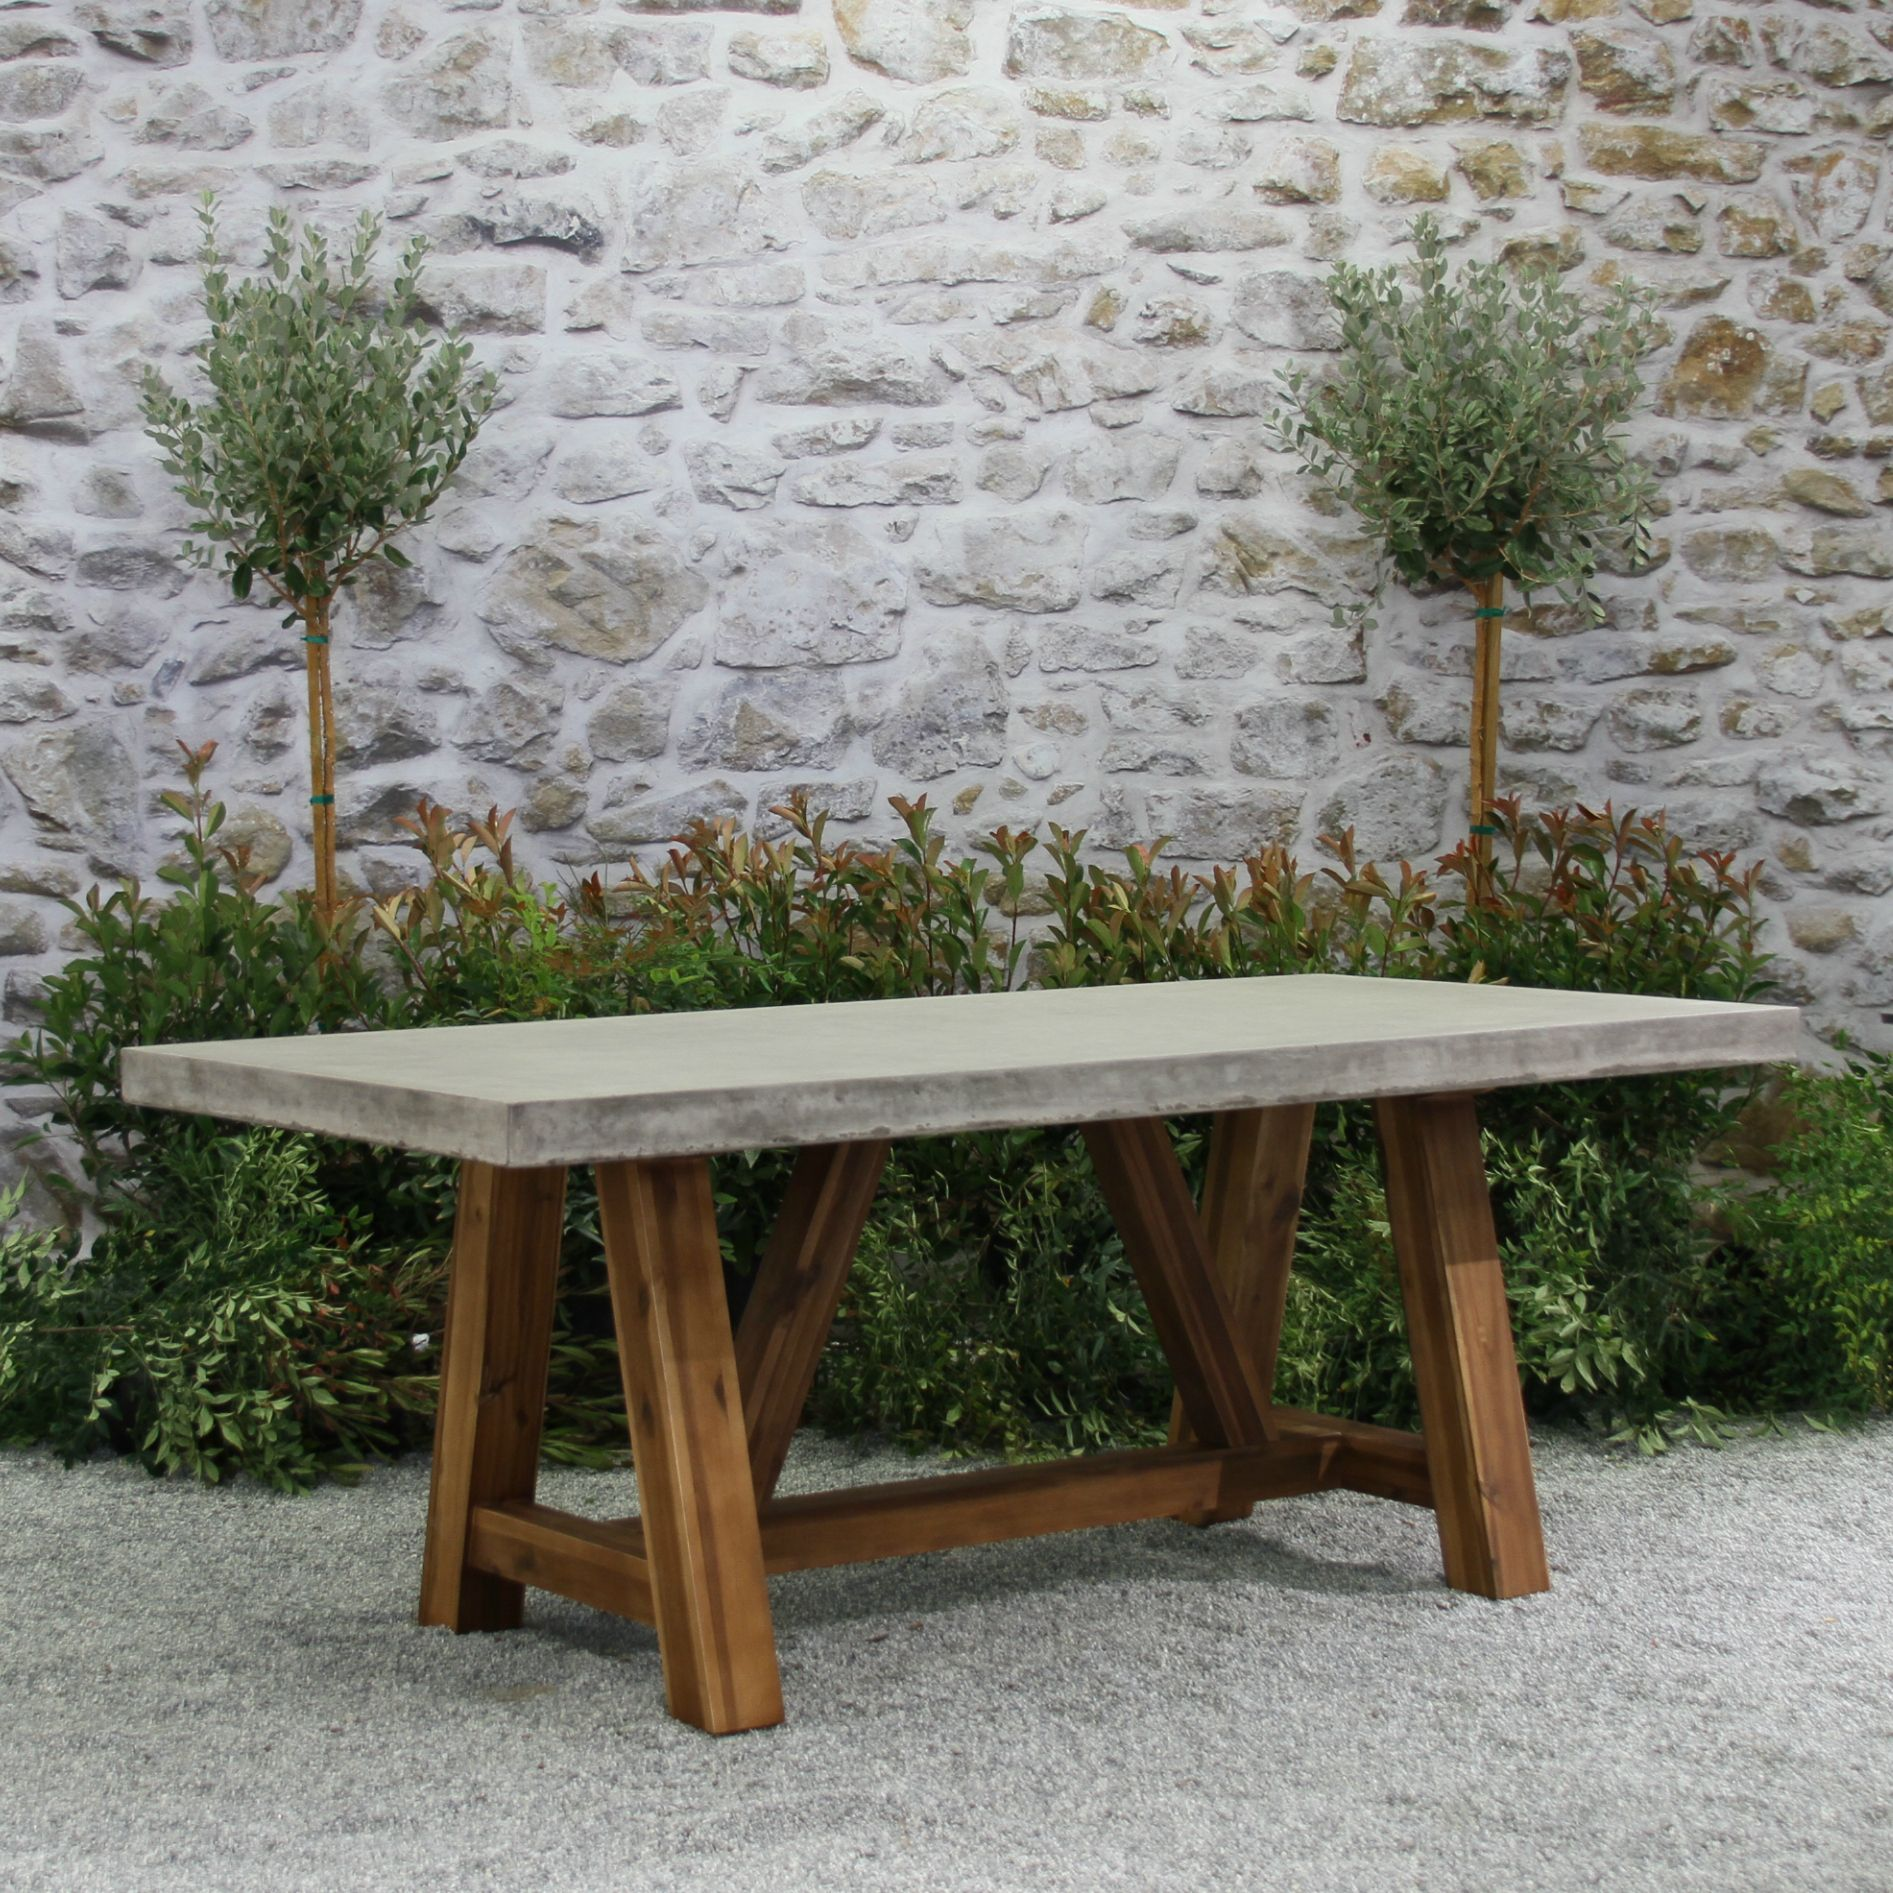 Bench Tables For Sale: Outdoor Tables On Sale Now. An Outdoor Table From Our Teak